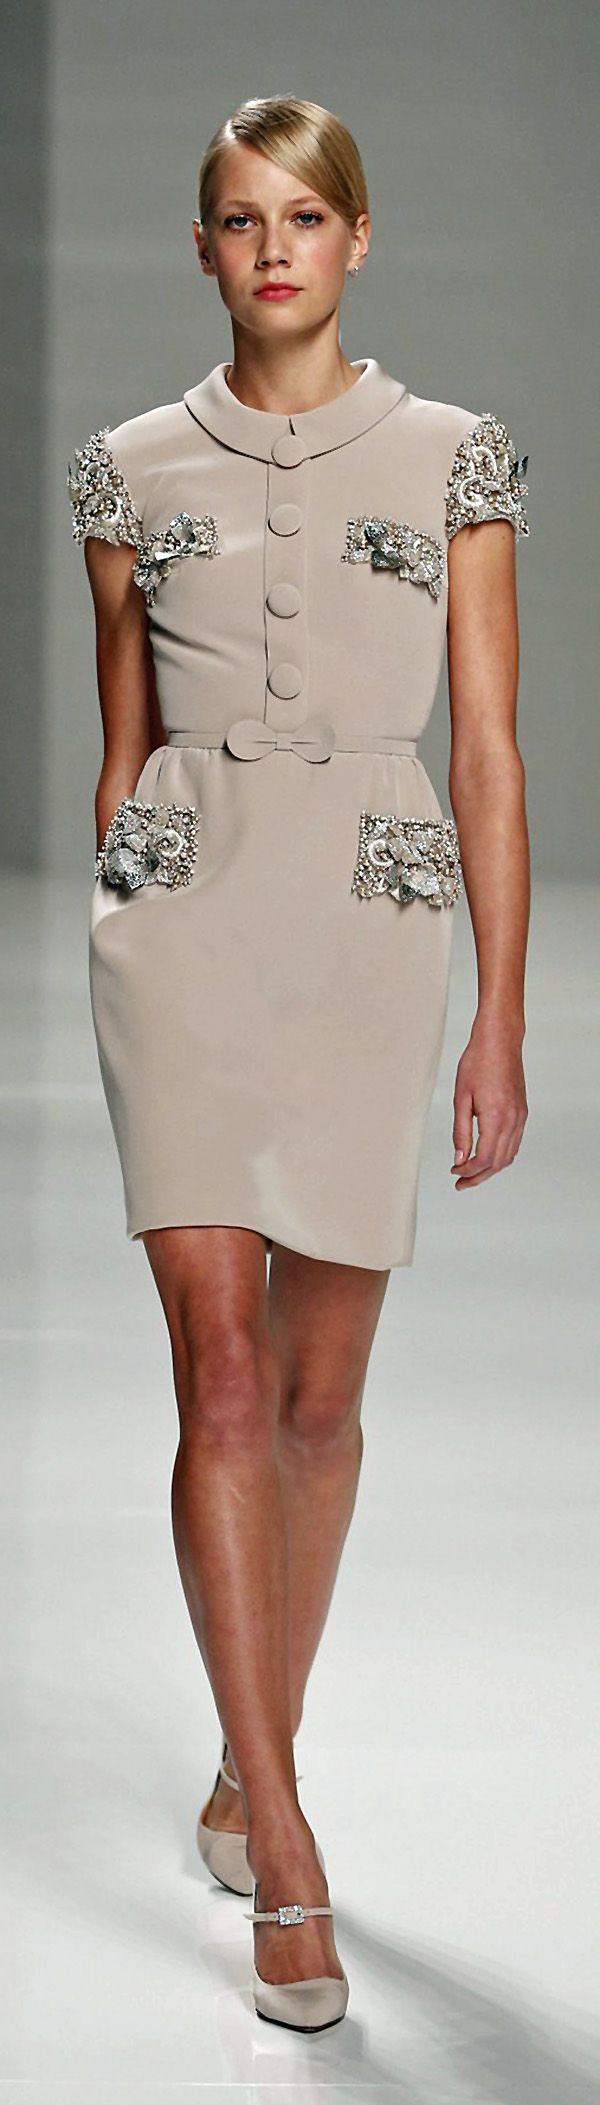 GEORGES-HOBEIKA Couture Spring/Summer 2015/16